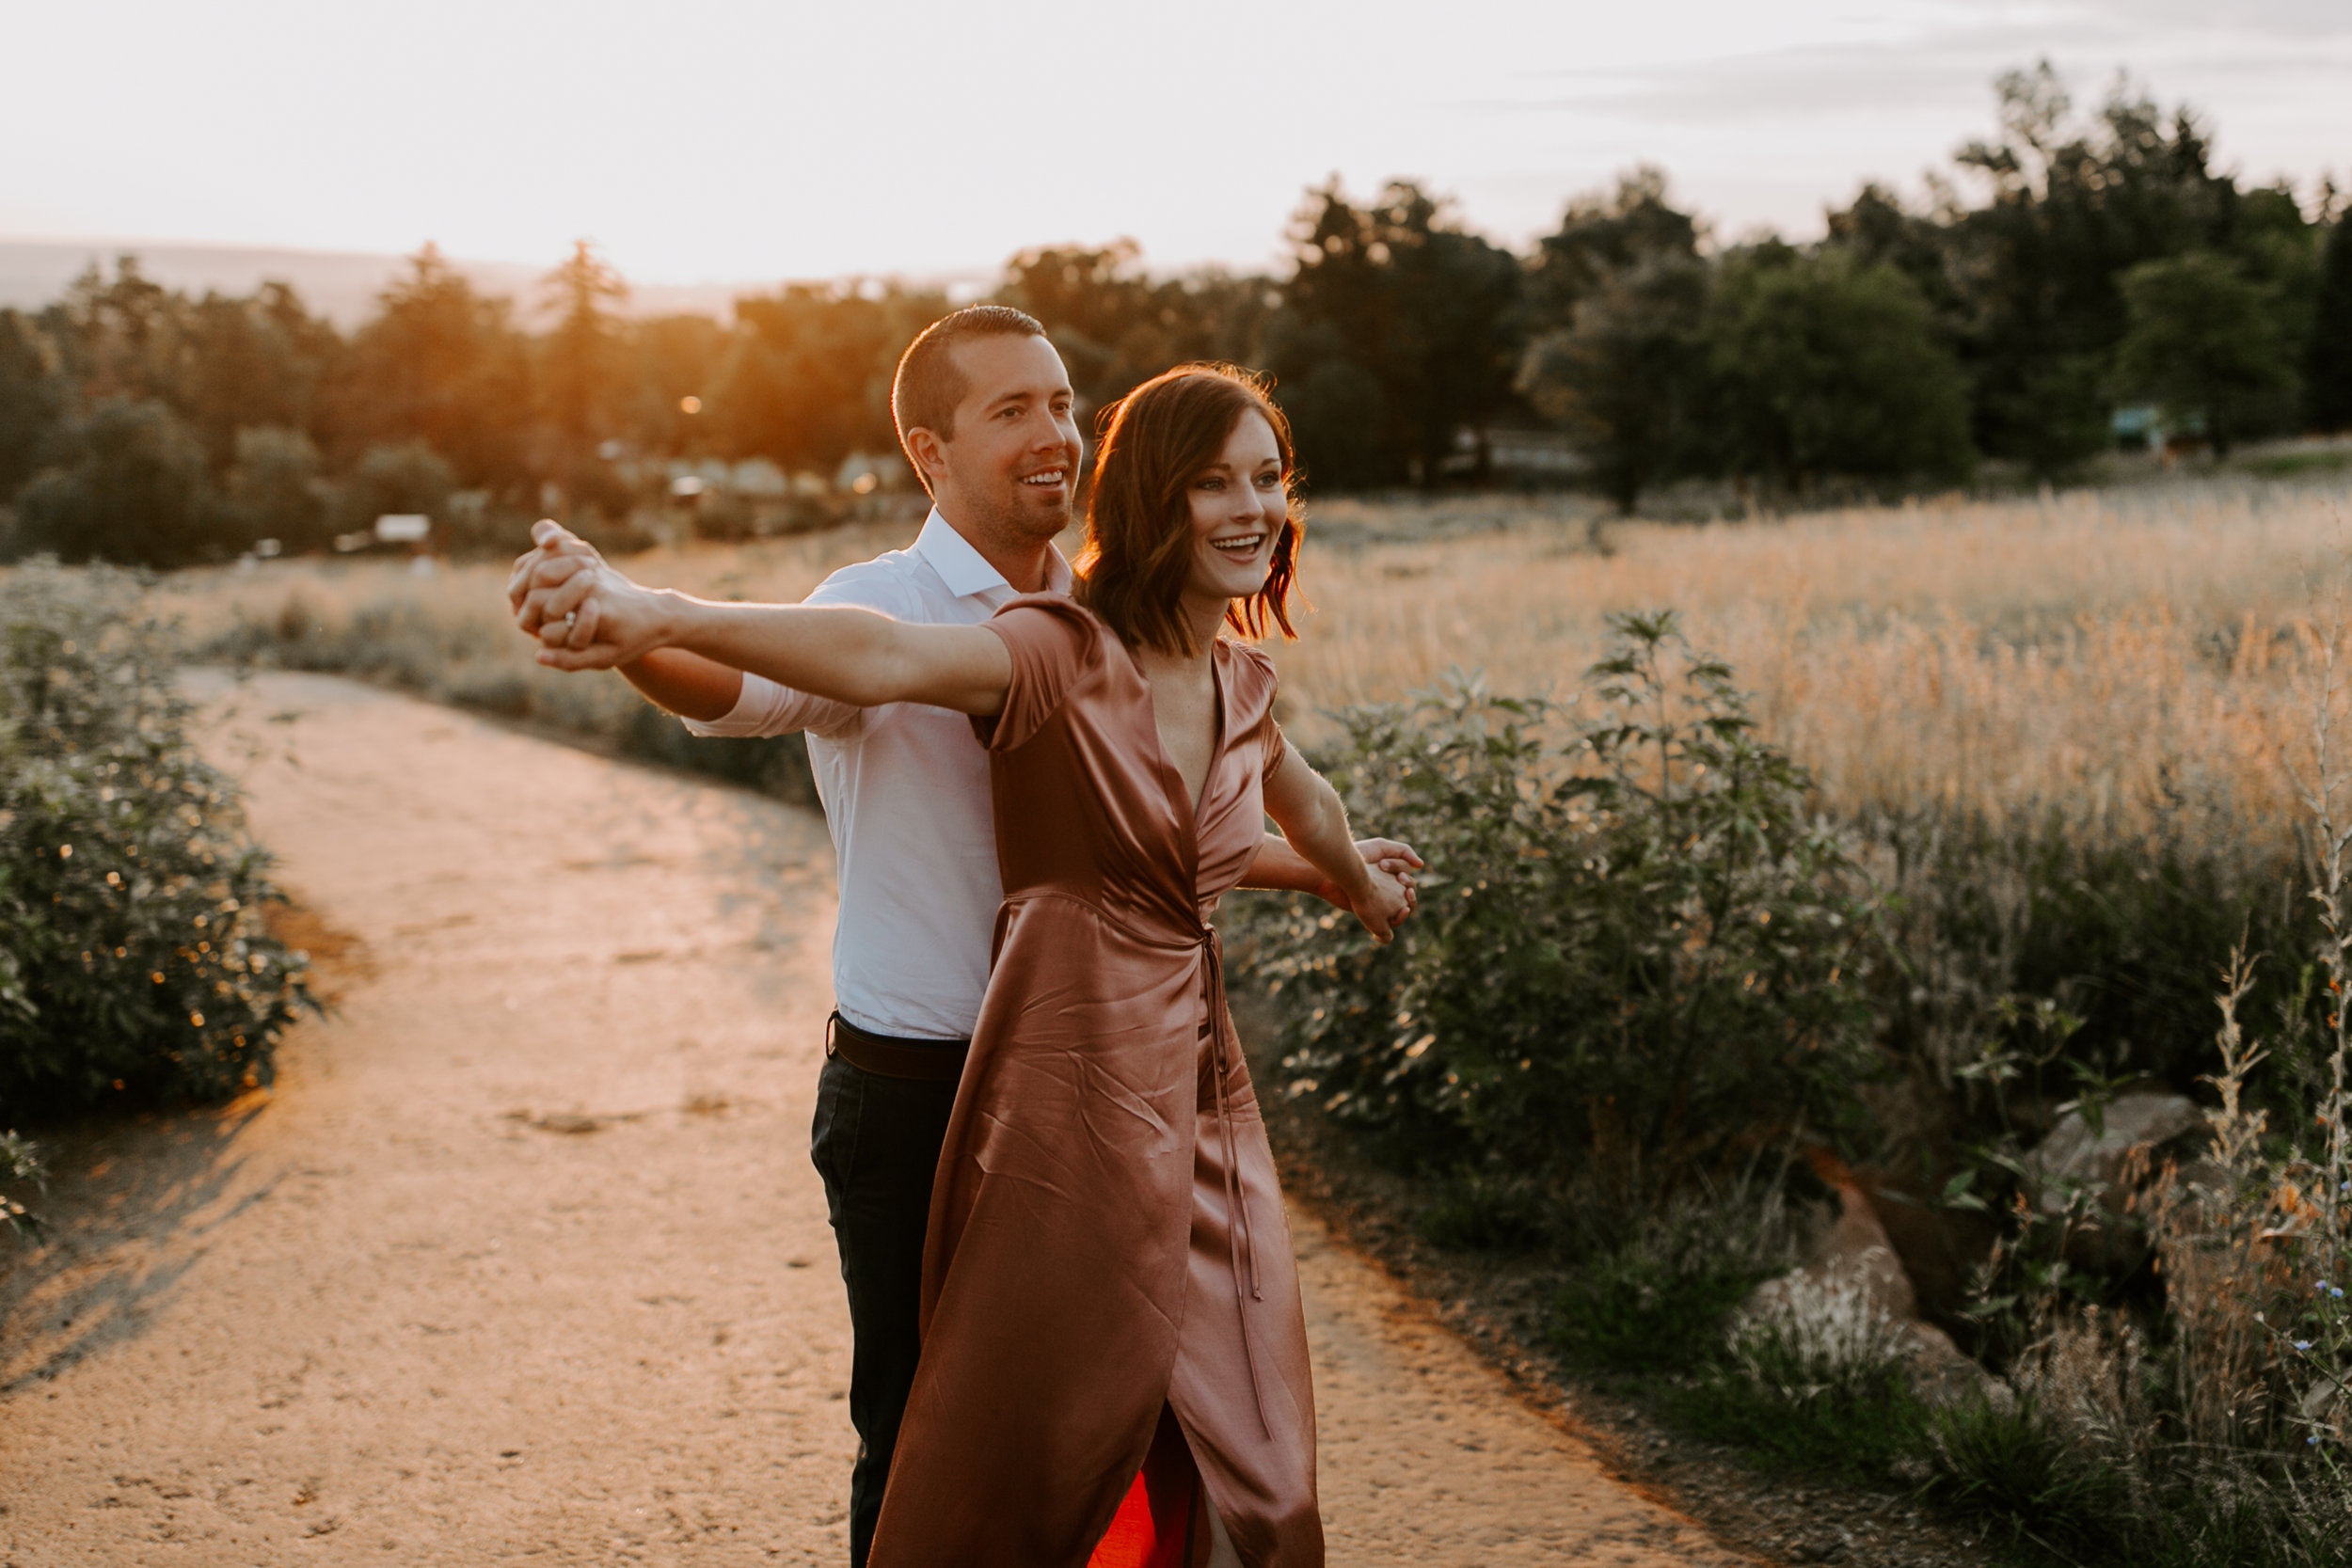 gracetphotography-denver-colorado-adventure-session-elopement-wedding-photographer-8.jpg